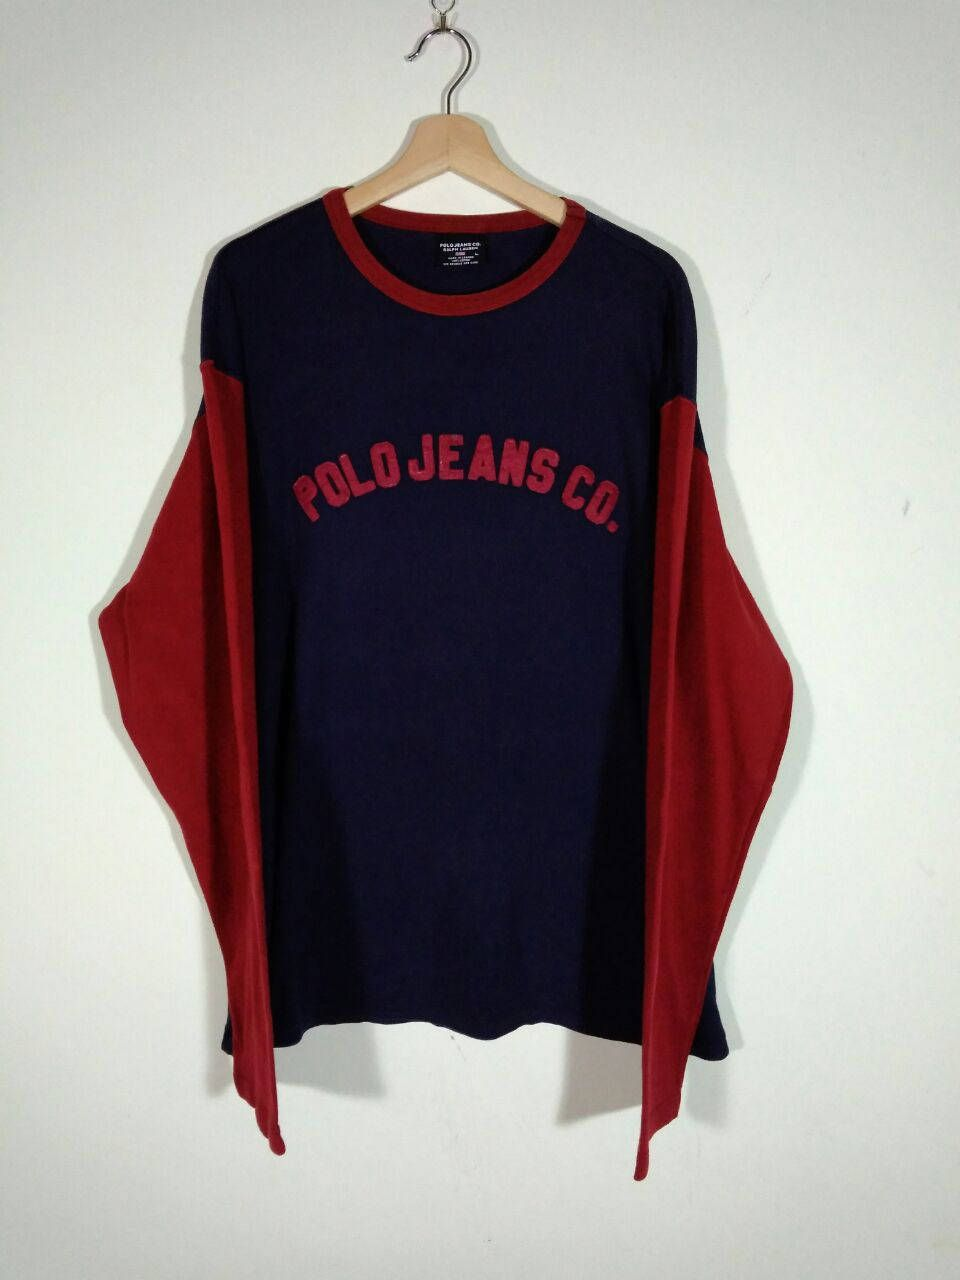 polo jeans company jumper ralph lauren round neck jumper